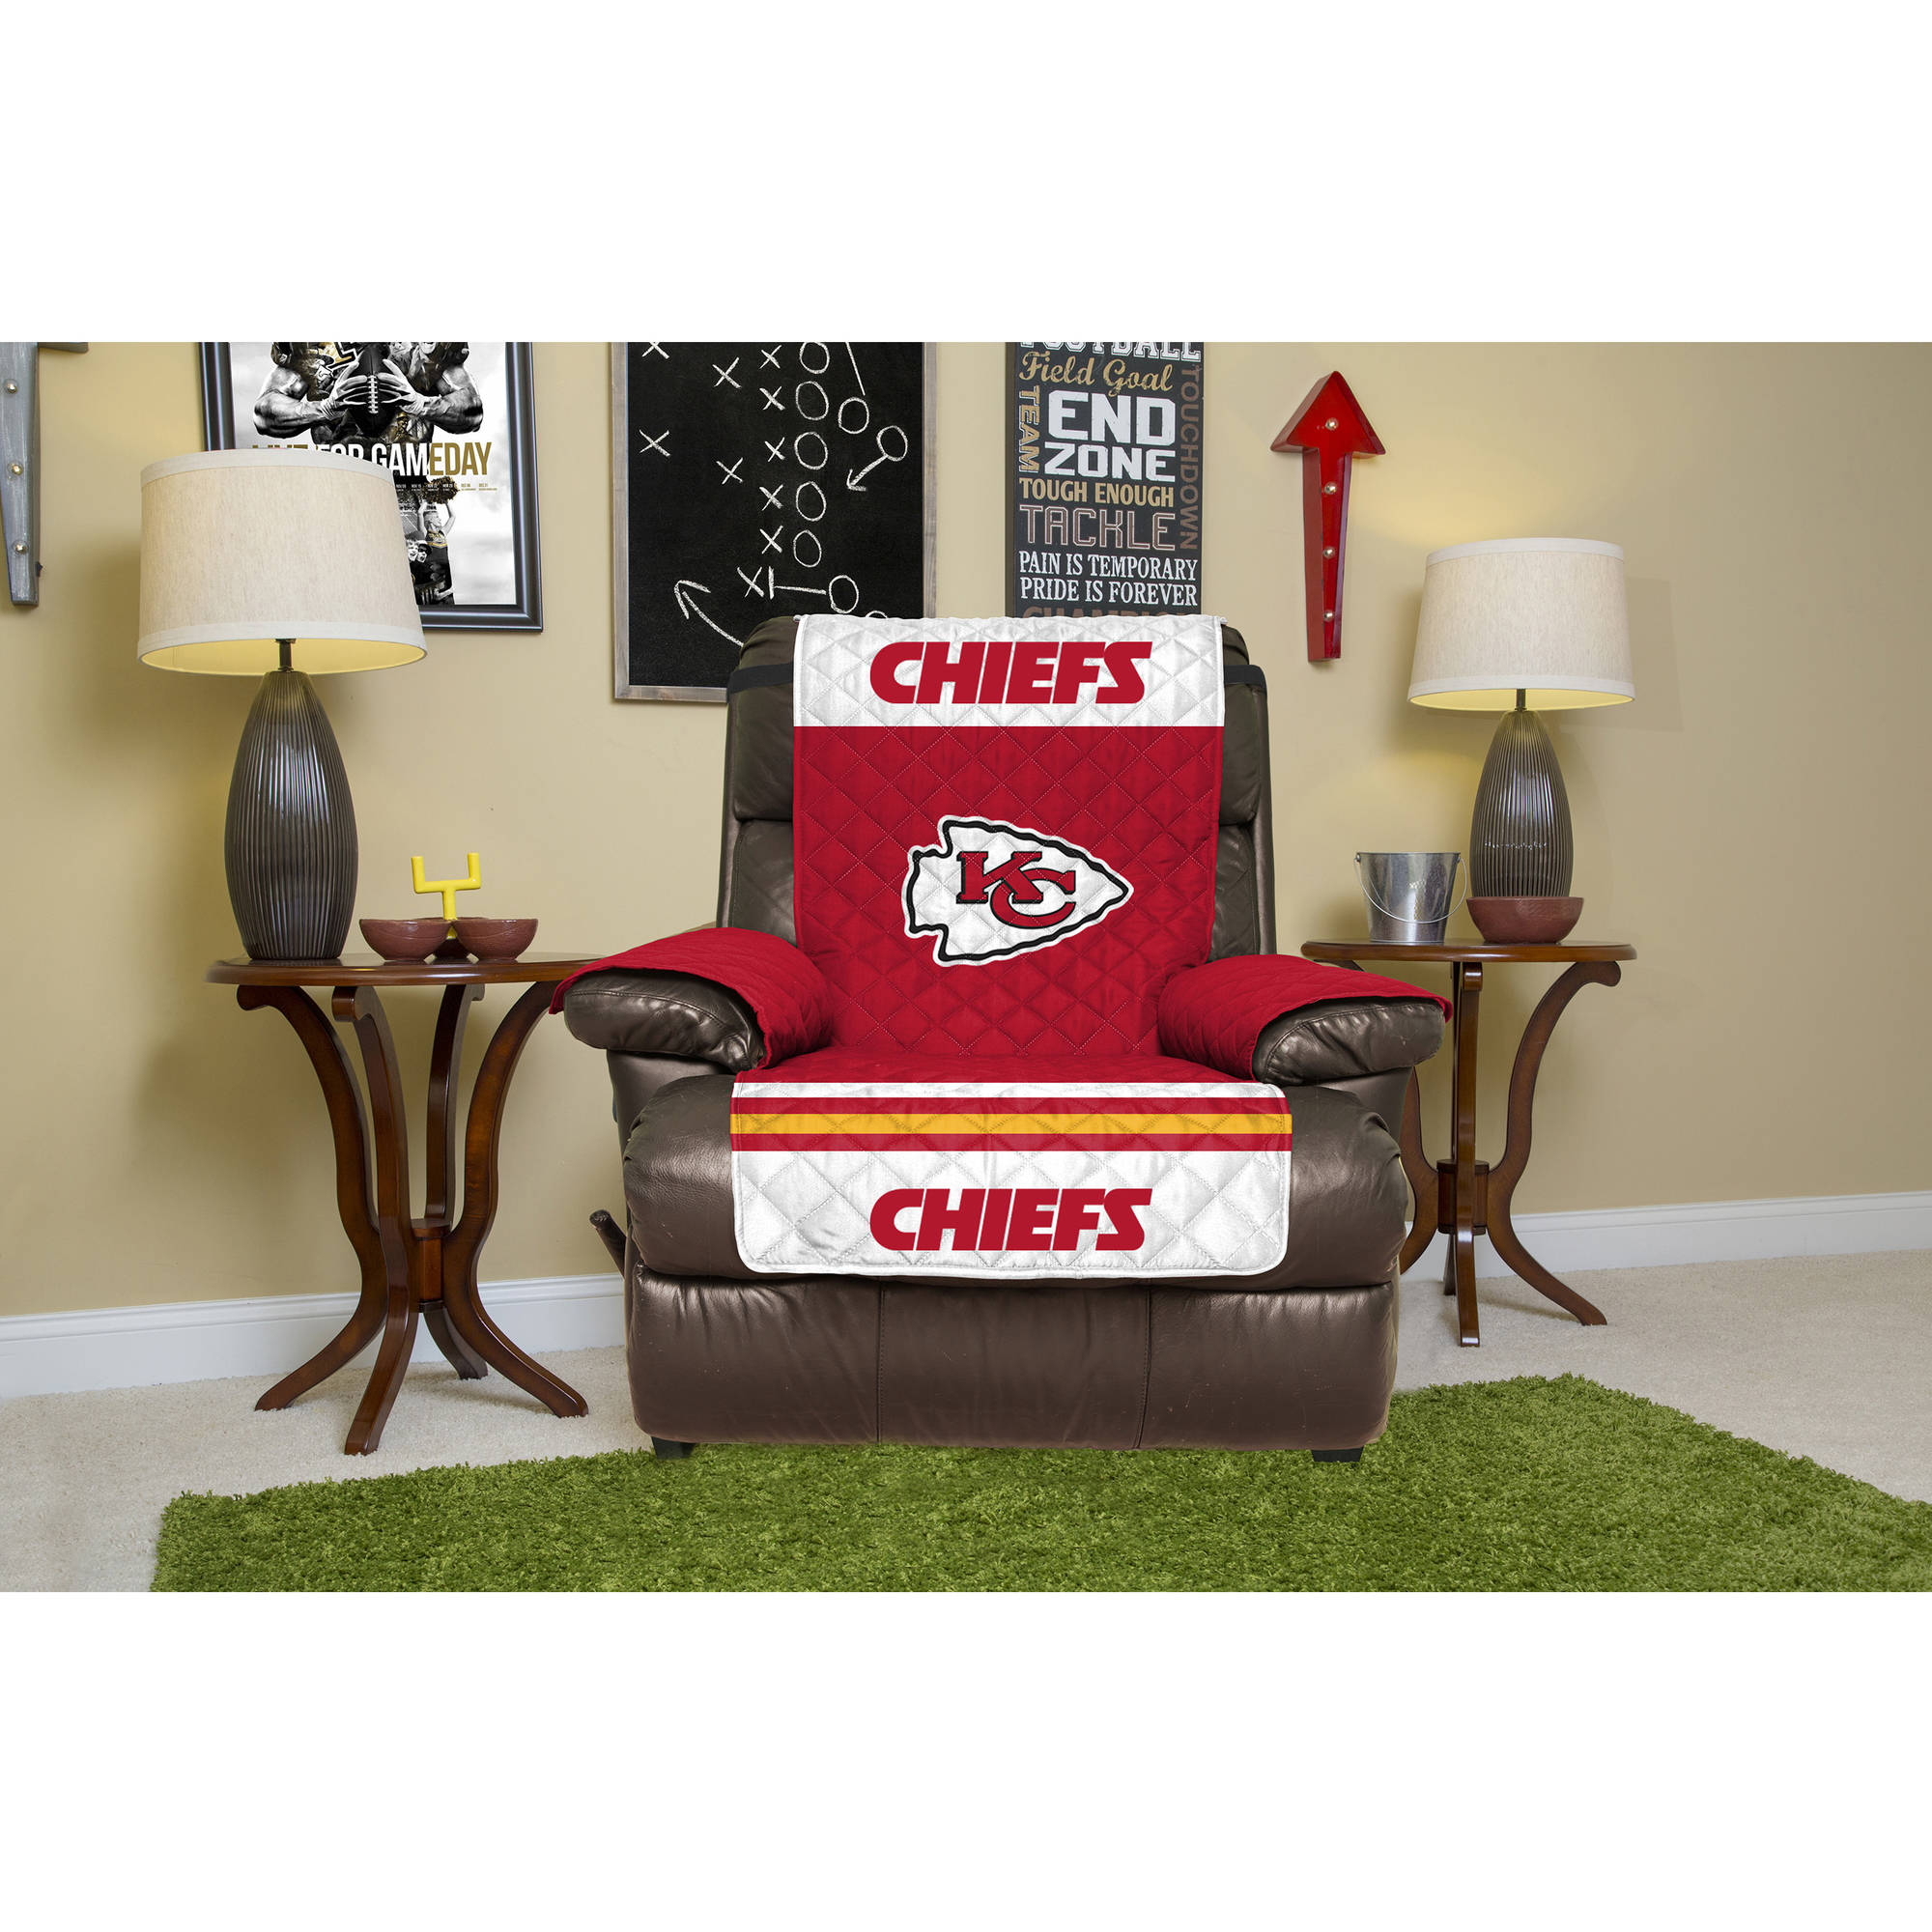 NFL Licensed Furniture Protector, Recliner, Kansas City Chiefs